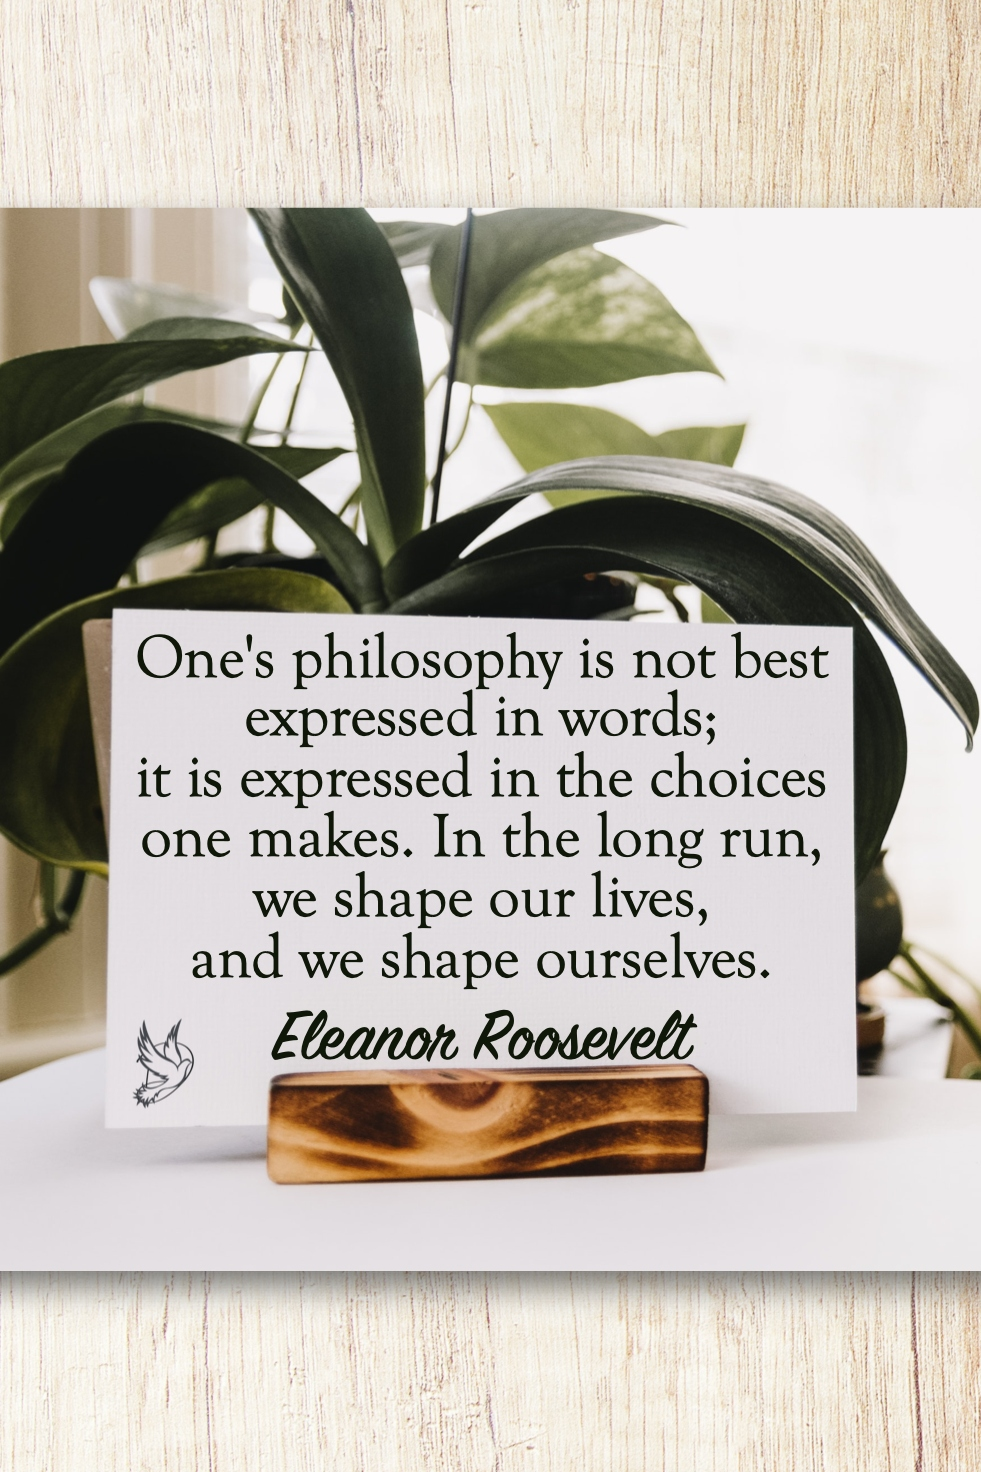 Our philosophy is best expressed in the choices we make